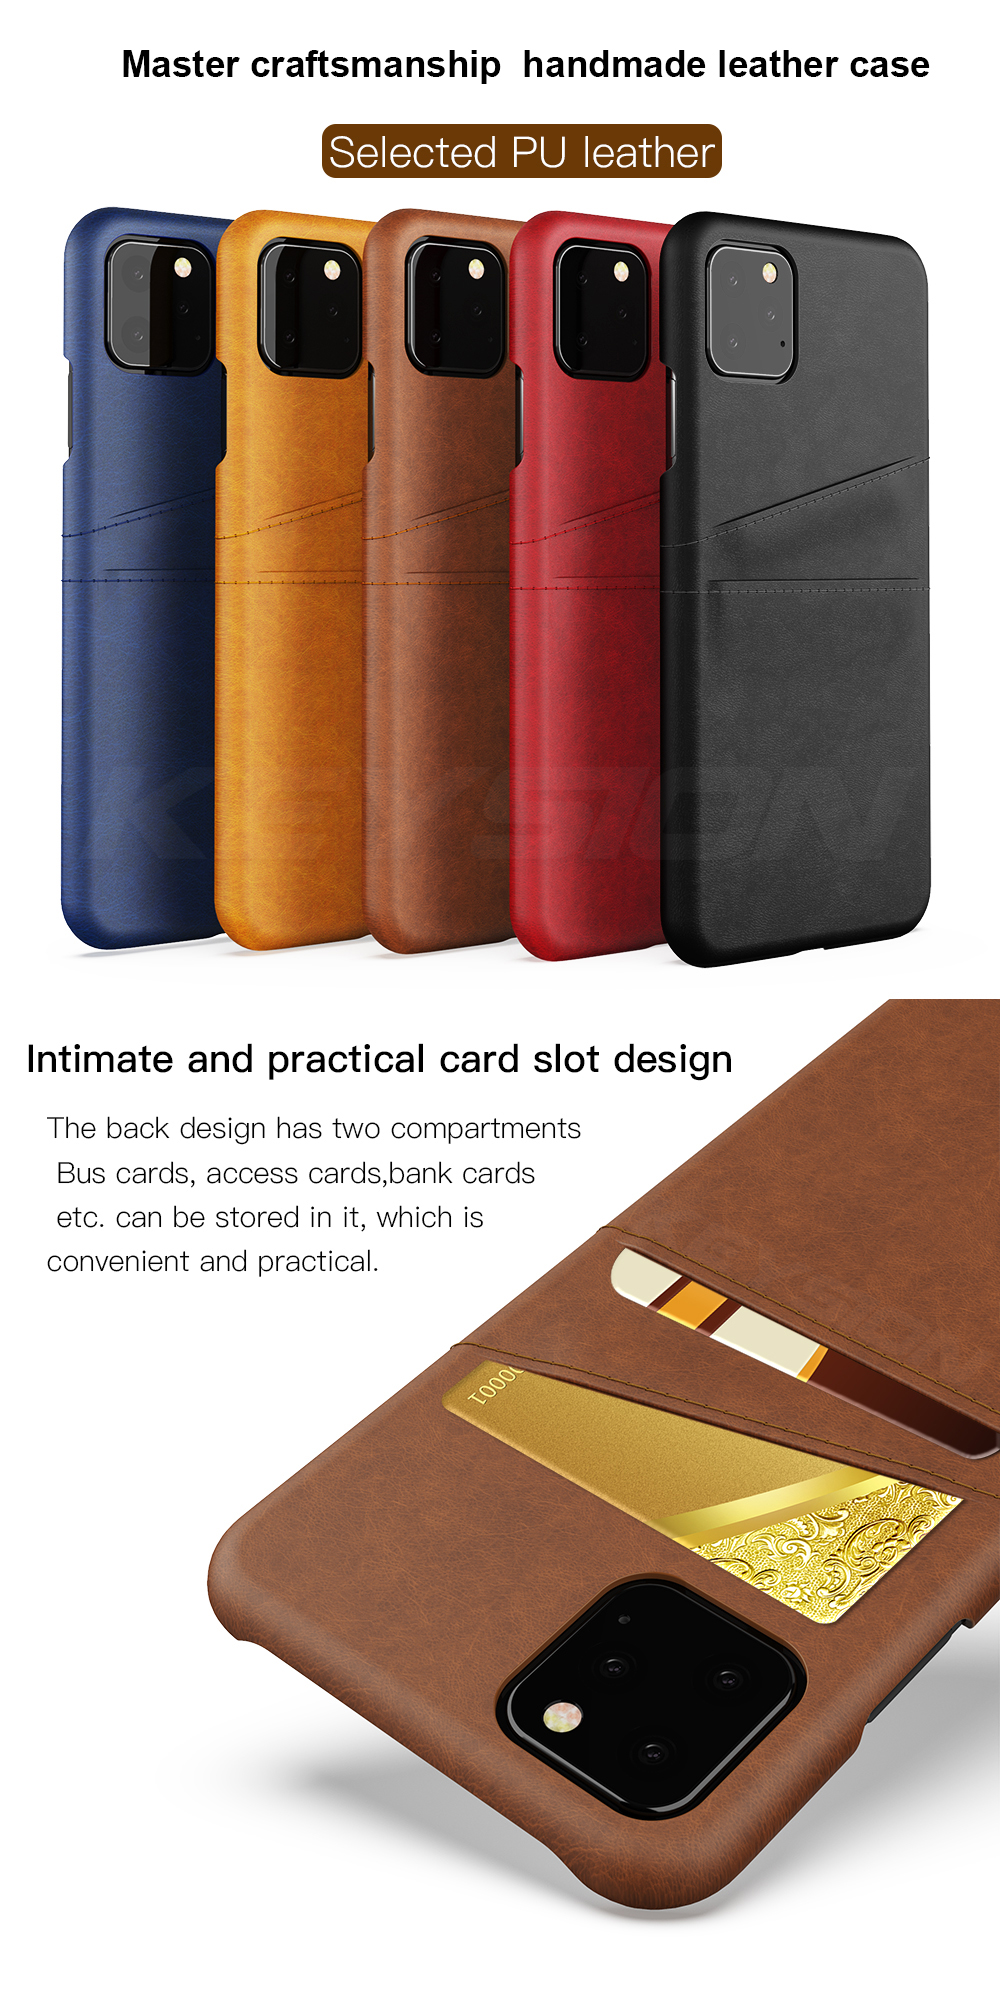 KEYSION Leather Card Pocket Cases for iPhone 11/11 Pro/11 Pro Max 1